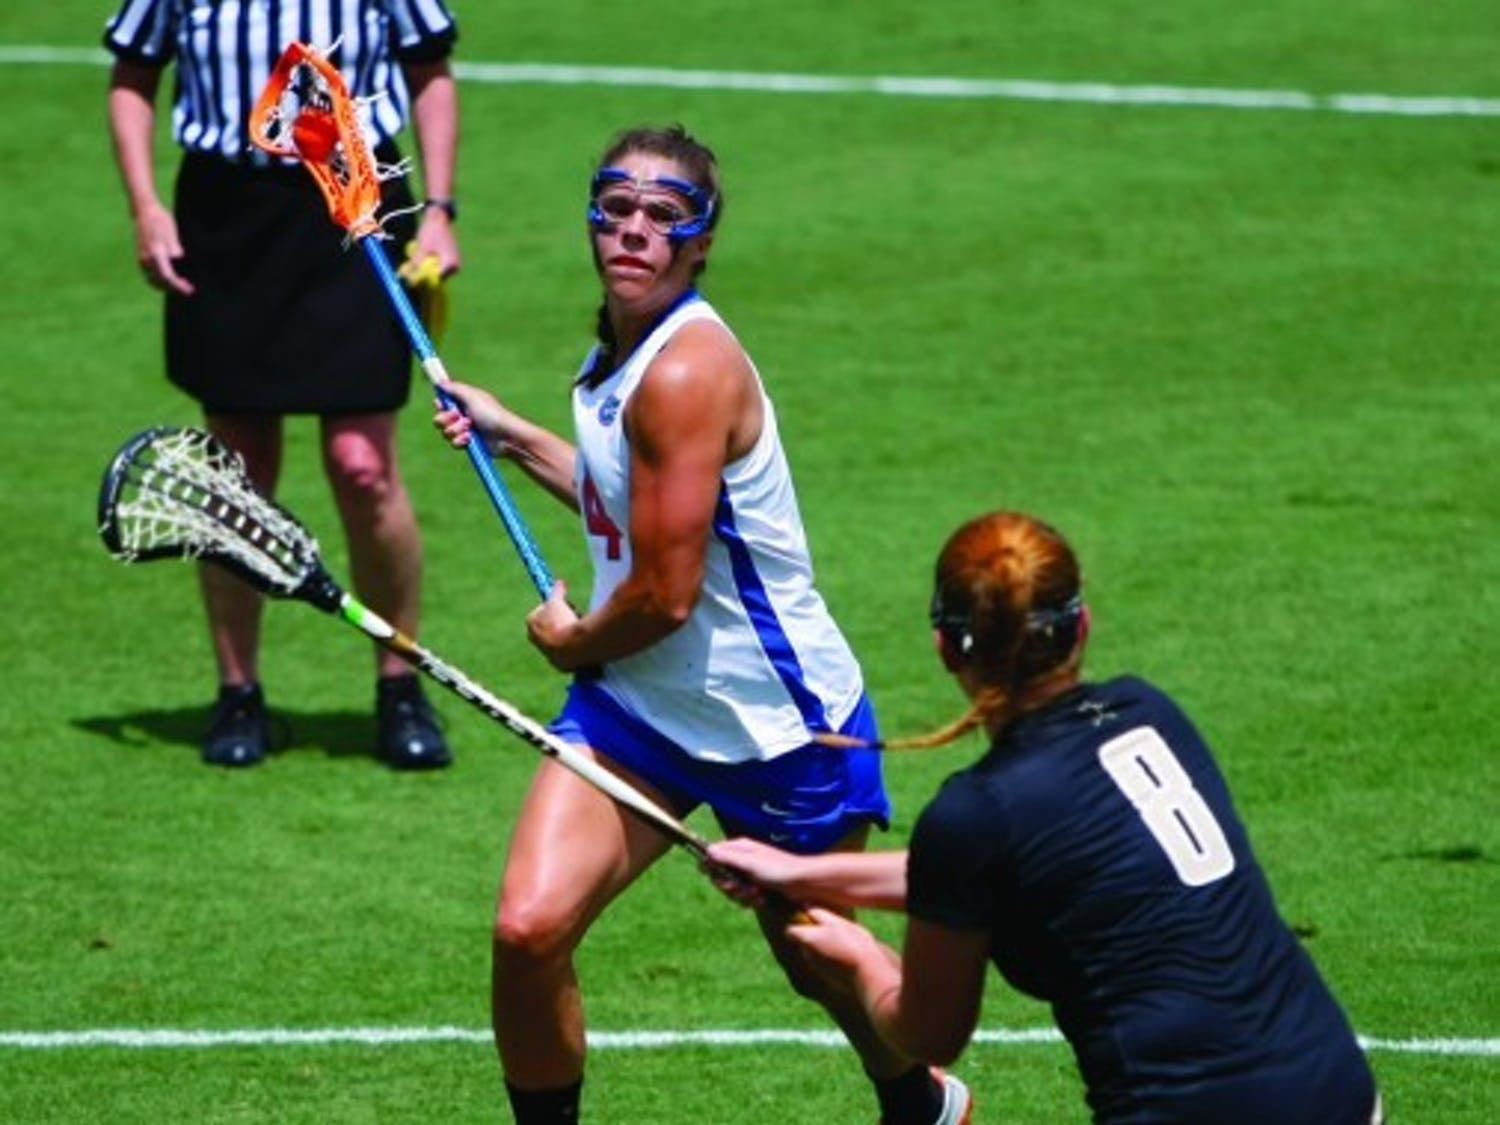 Florida attacker Kitty Cullen takes a shot against Vanderbilt on April 14. Cullen has scored nine goals since returning from a concussion.